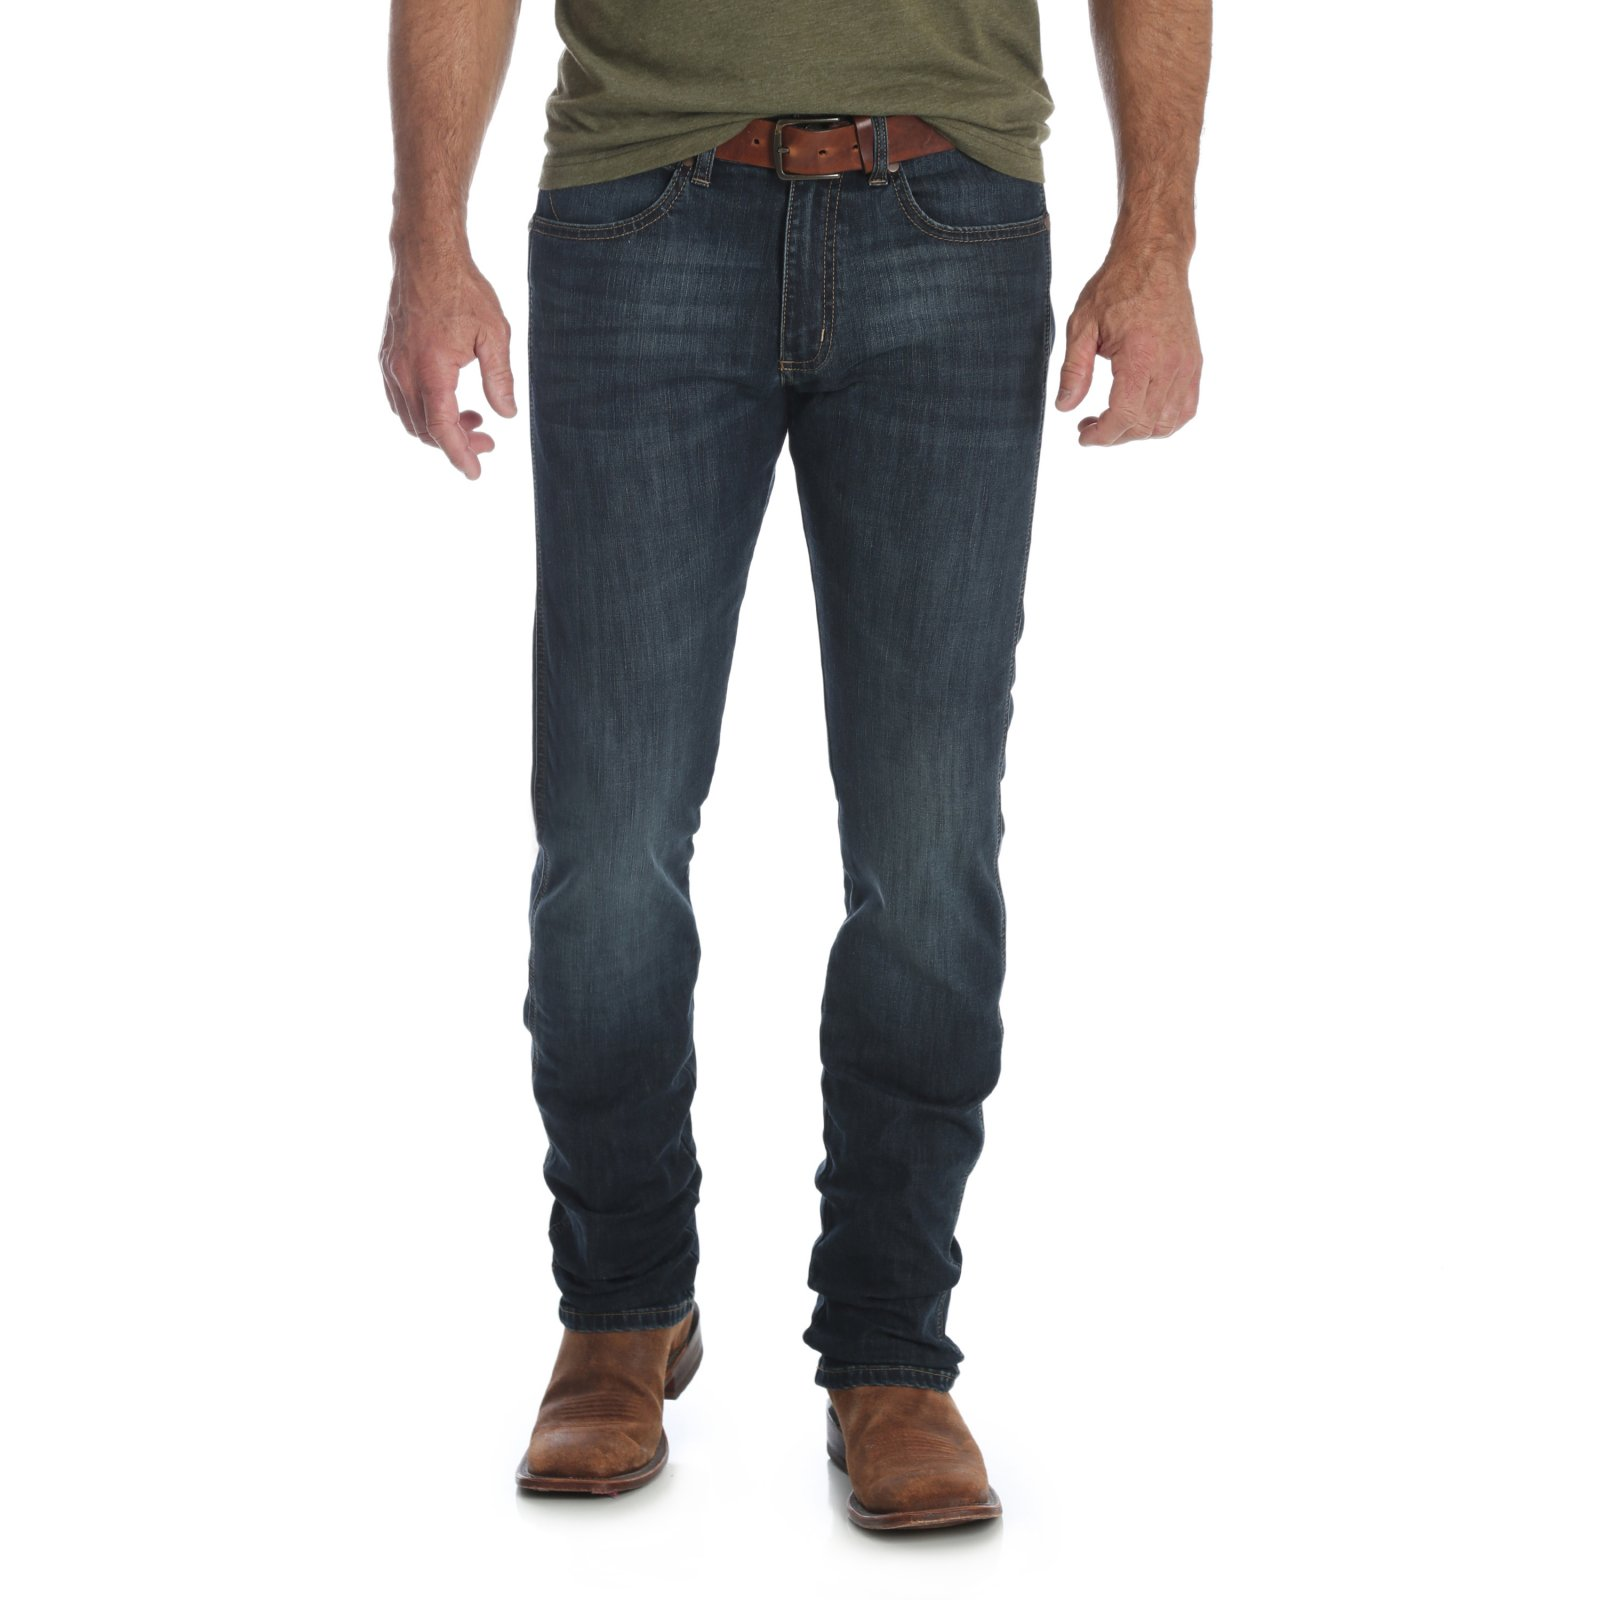 Men's Retro Skinny Jean from Wrangler